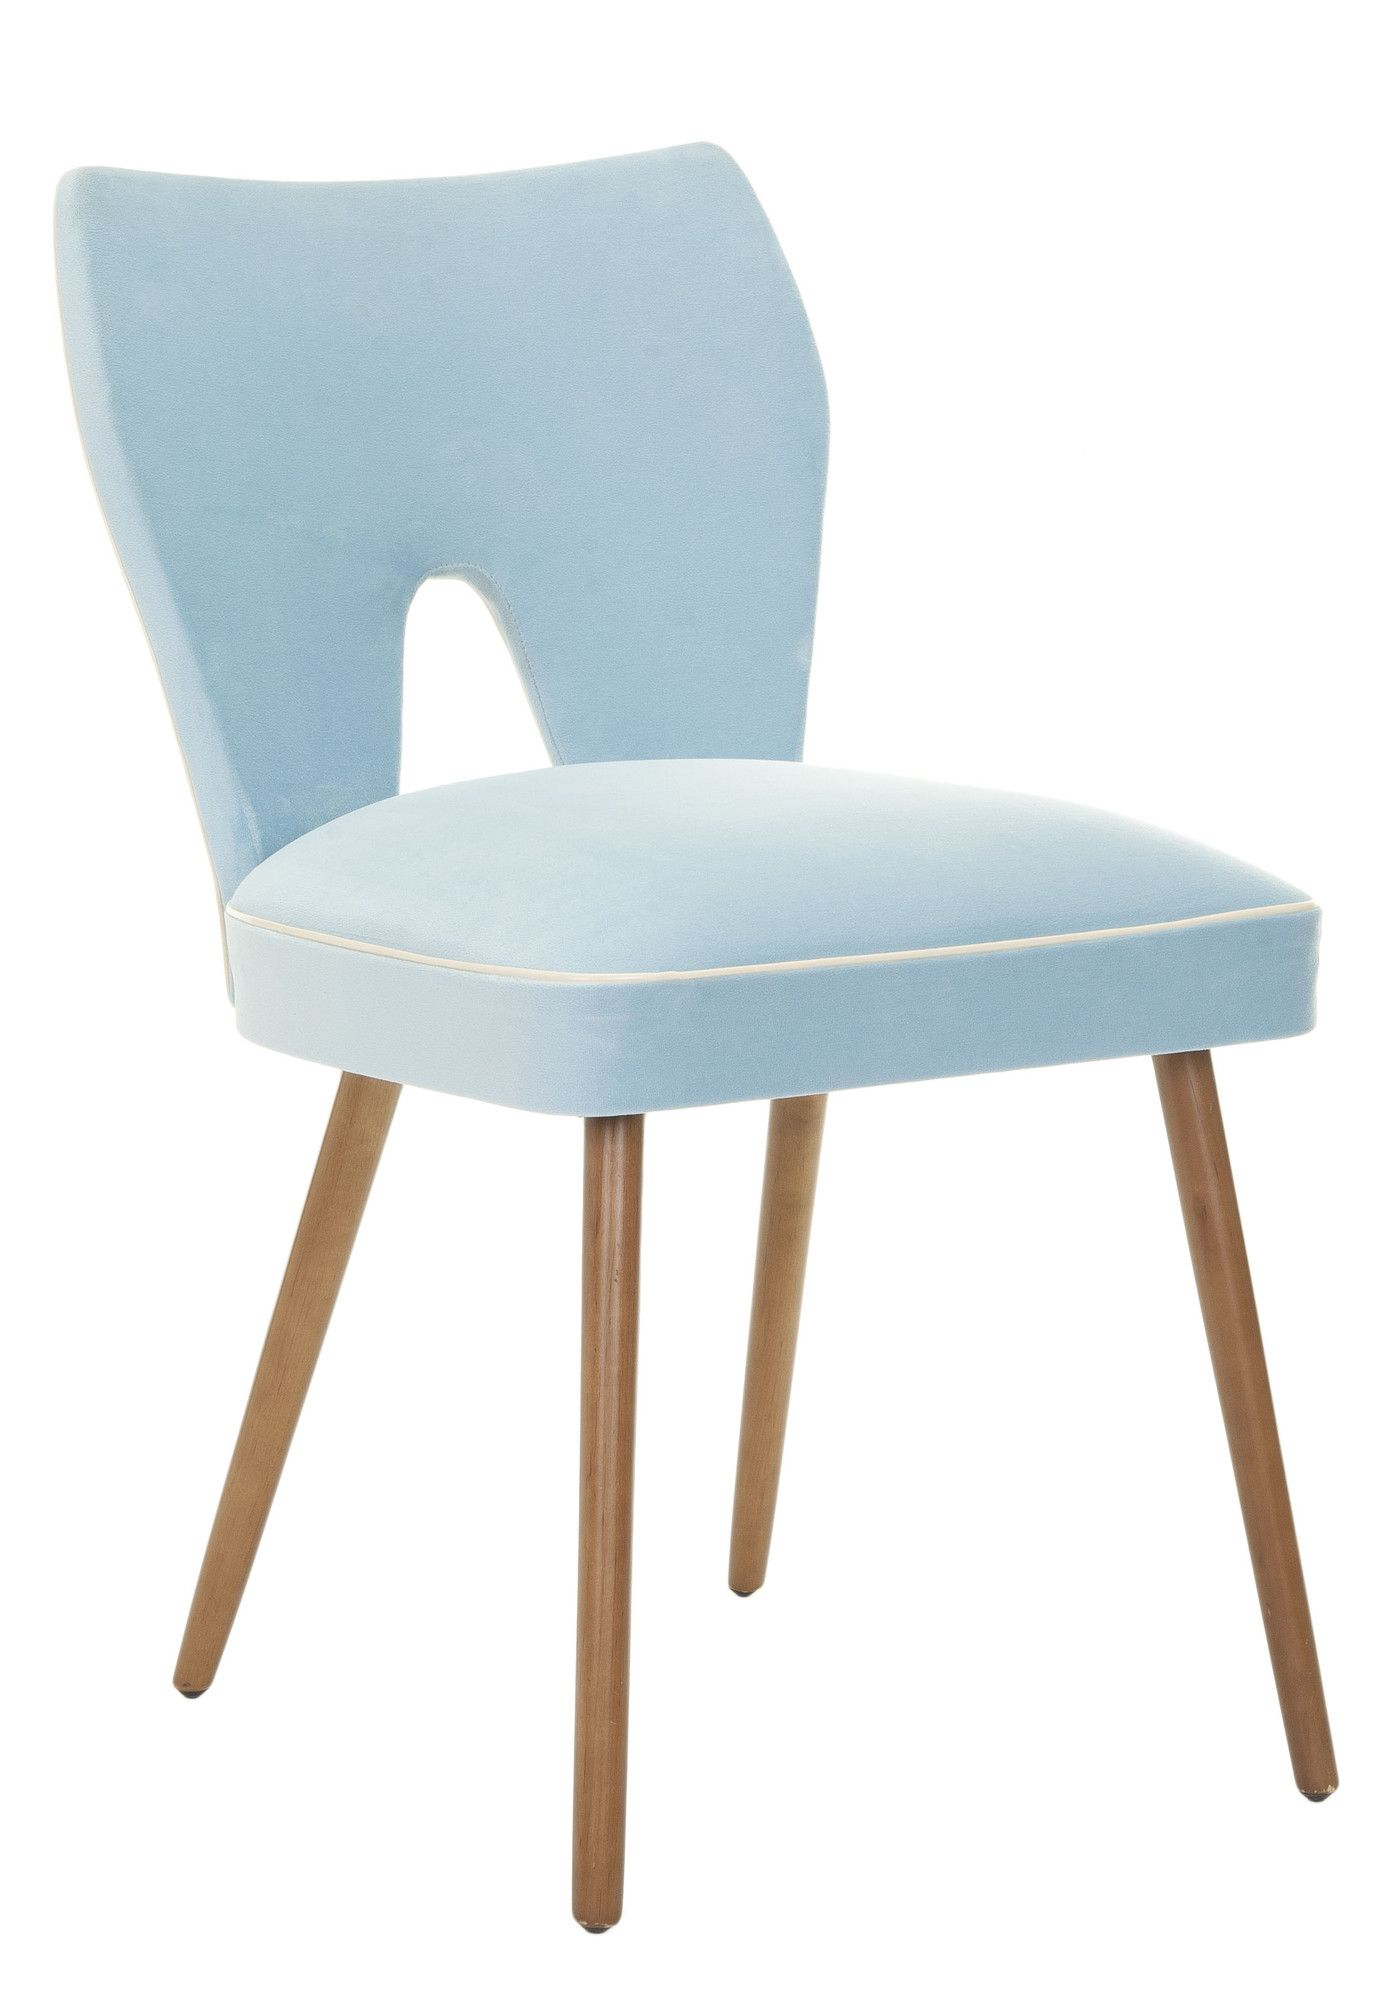 Safavieh Dining Room Chairs Hud8200a Set2 Dining Chairs